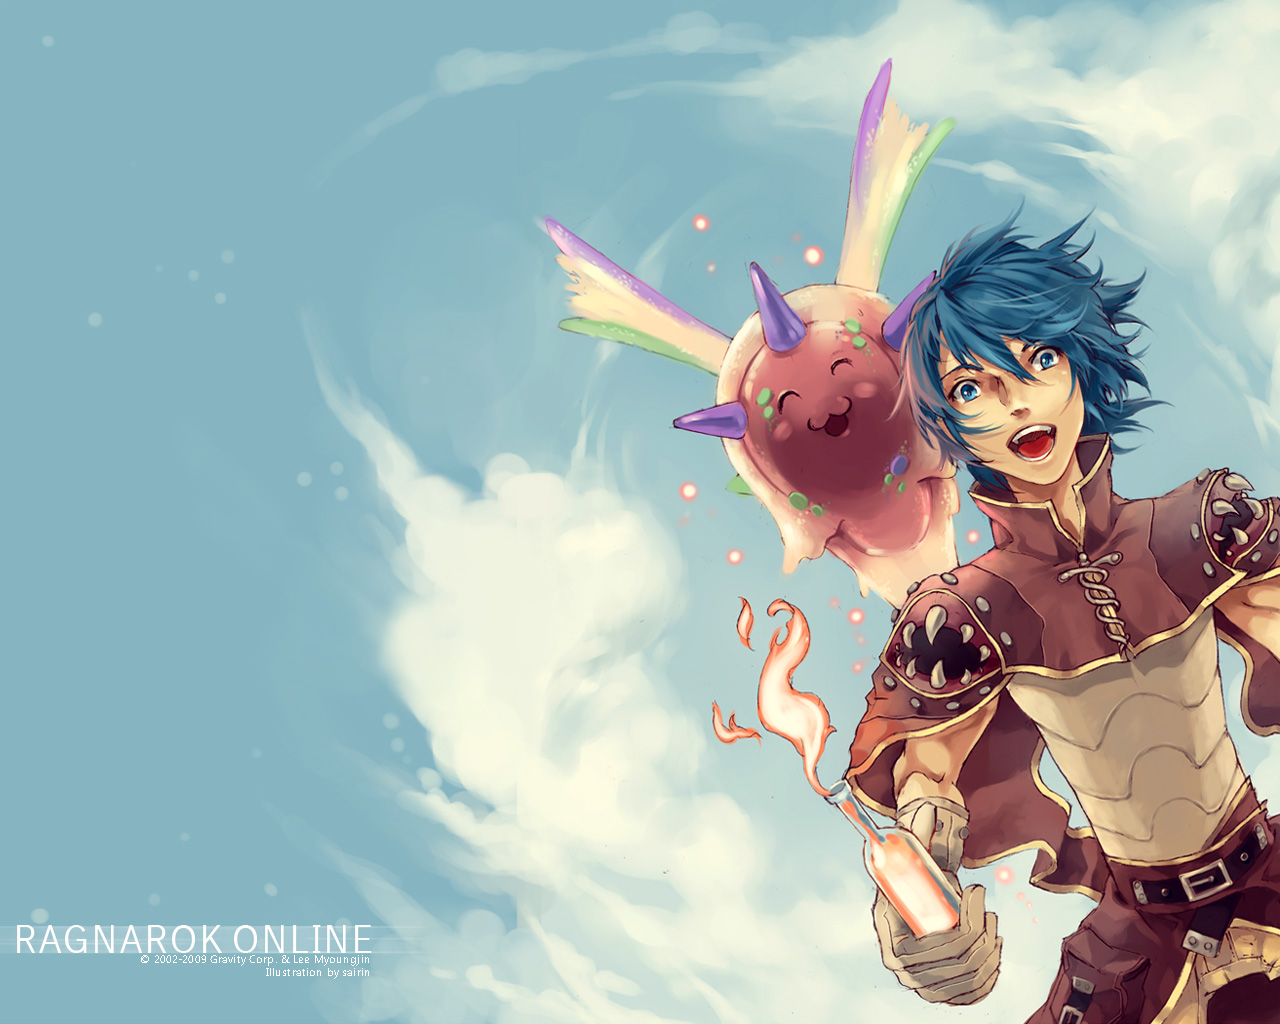 Ragnarok online alchemist hd desktop wallpapers 4k hd - Ragnarok wallpaper ...